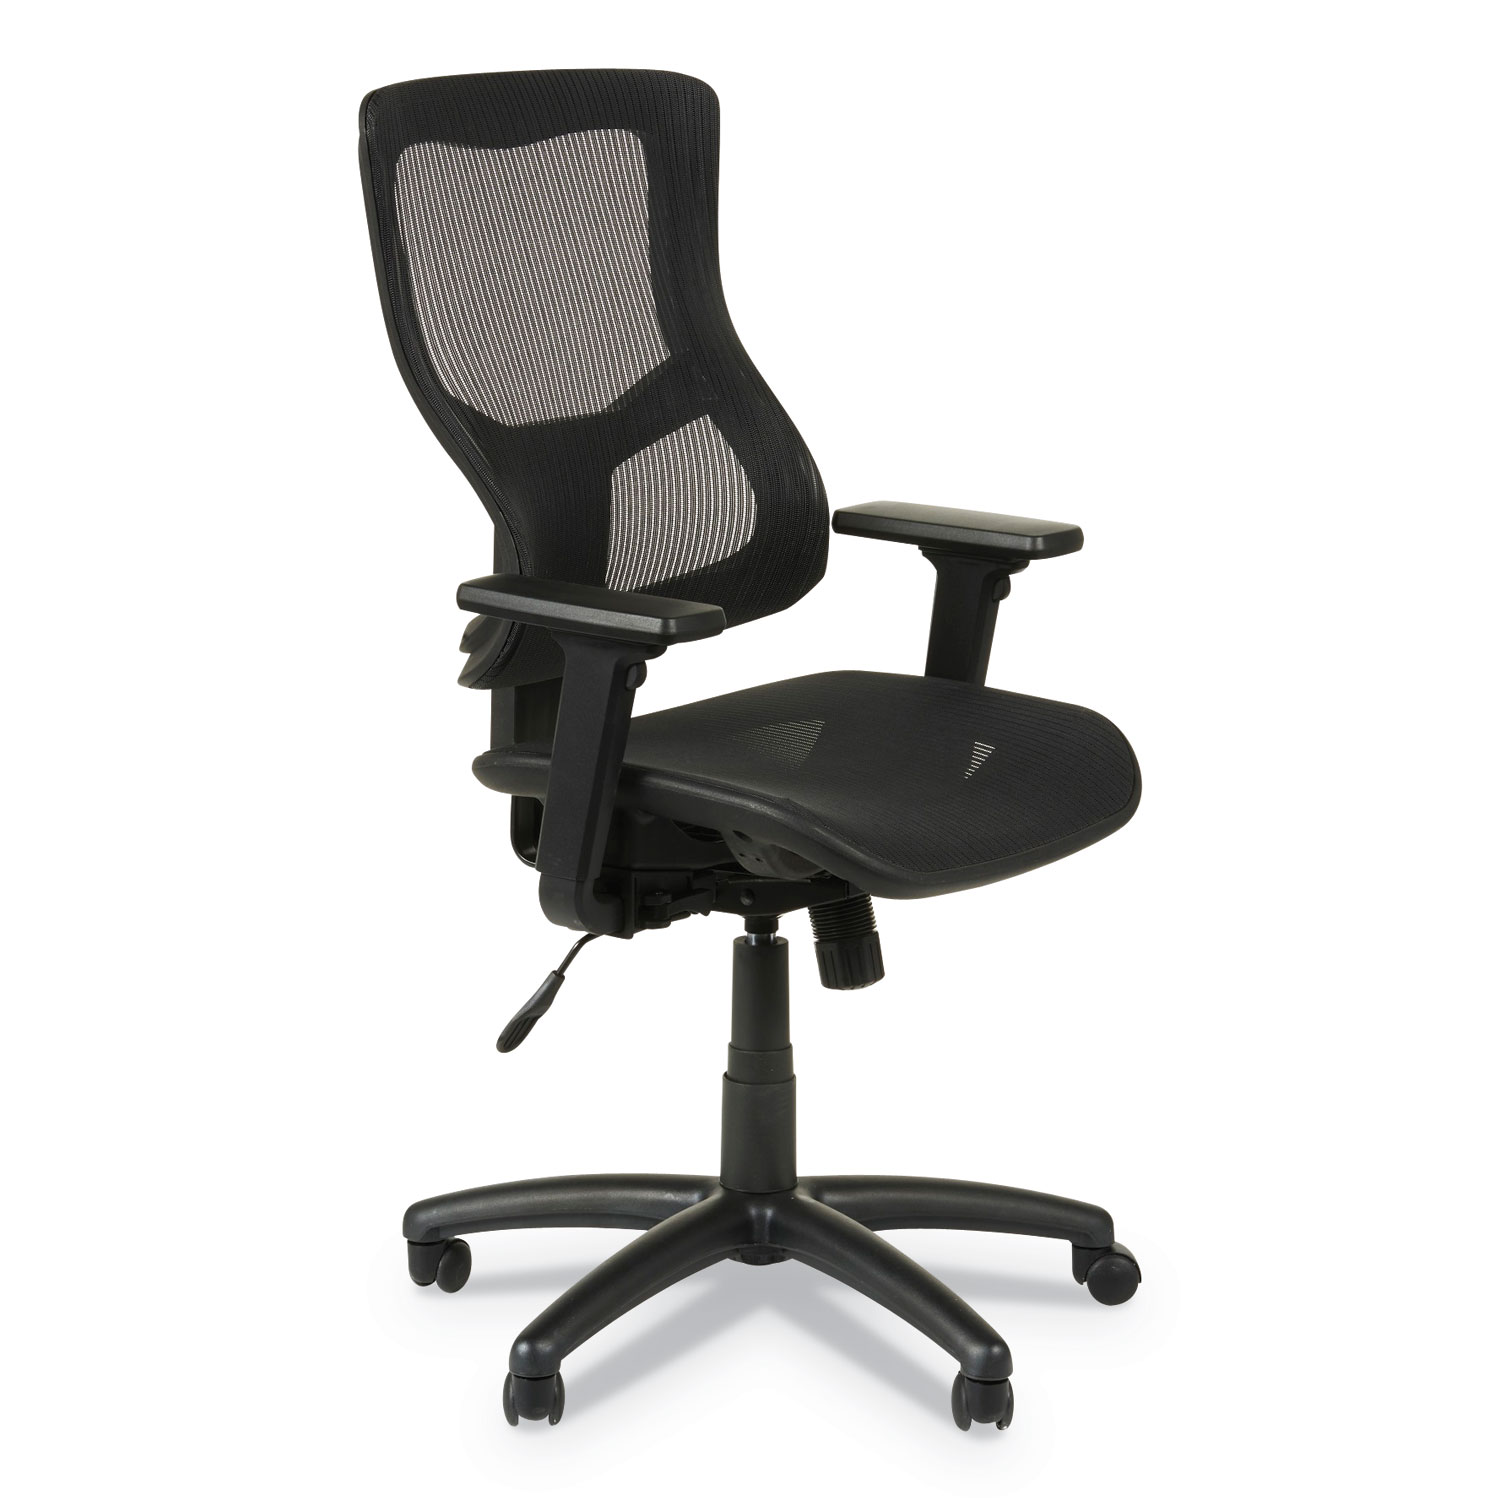 Alera Office Chairs Alera Elusion Ii Series Suspension Mesh Mid Back Synchro Seat